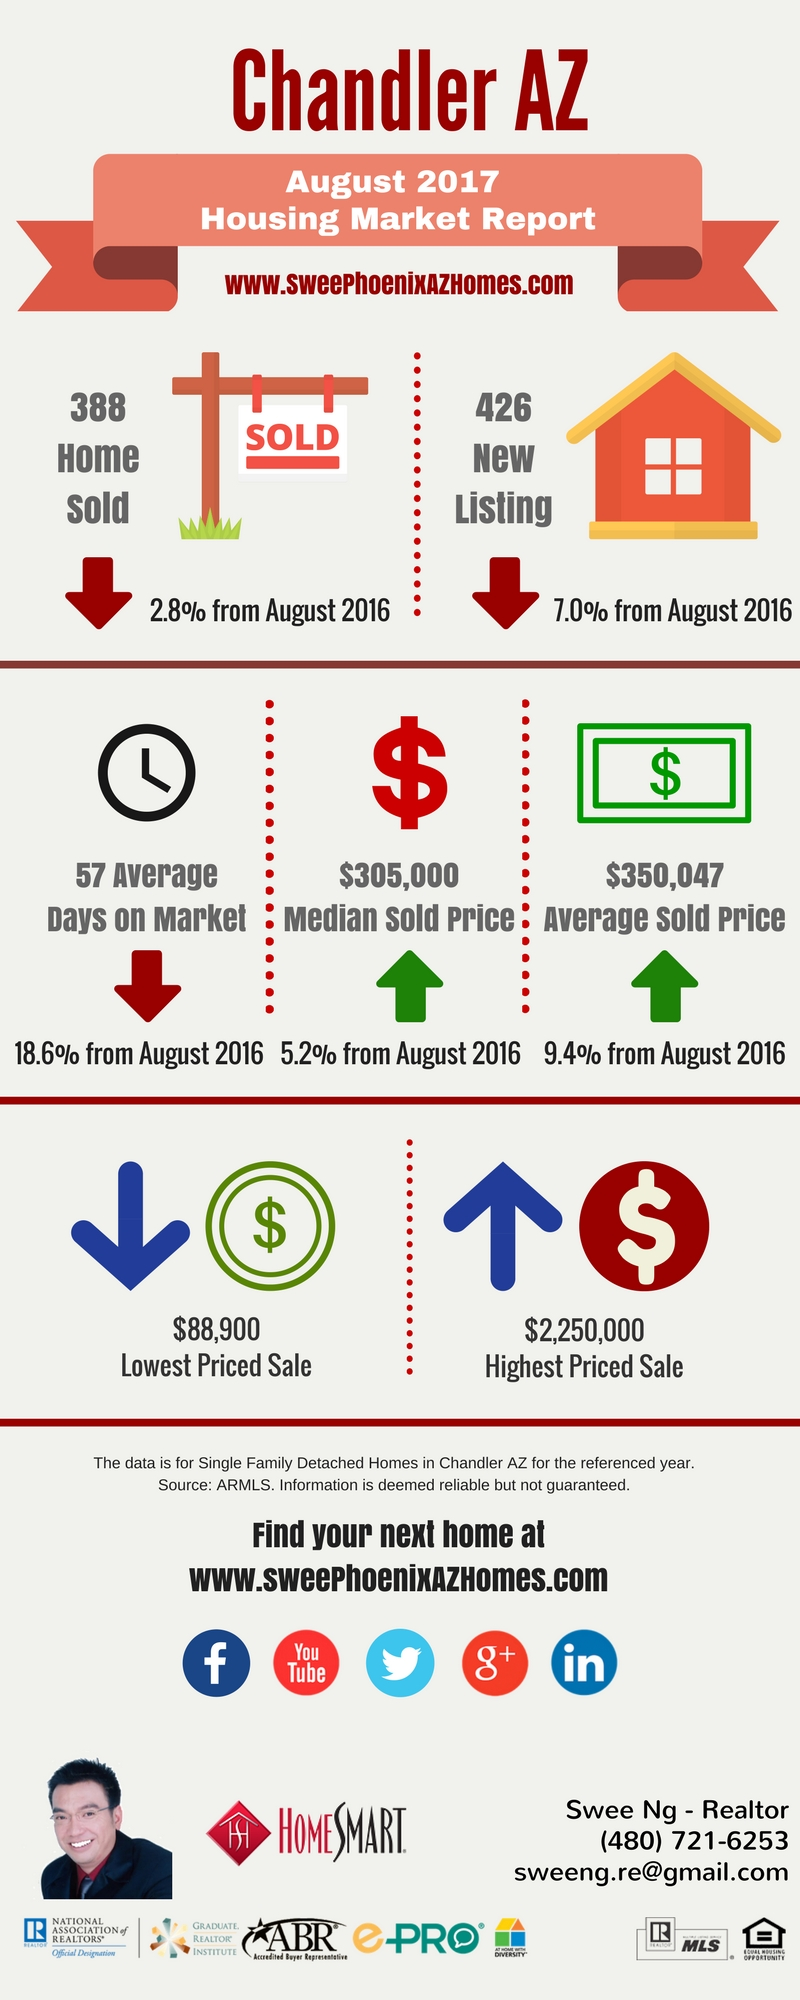 Chandler AZ Housing Market Update August 2017 by Swee Ng, House Value and Real Estate Listings